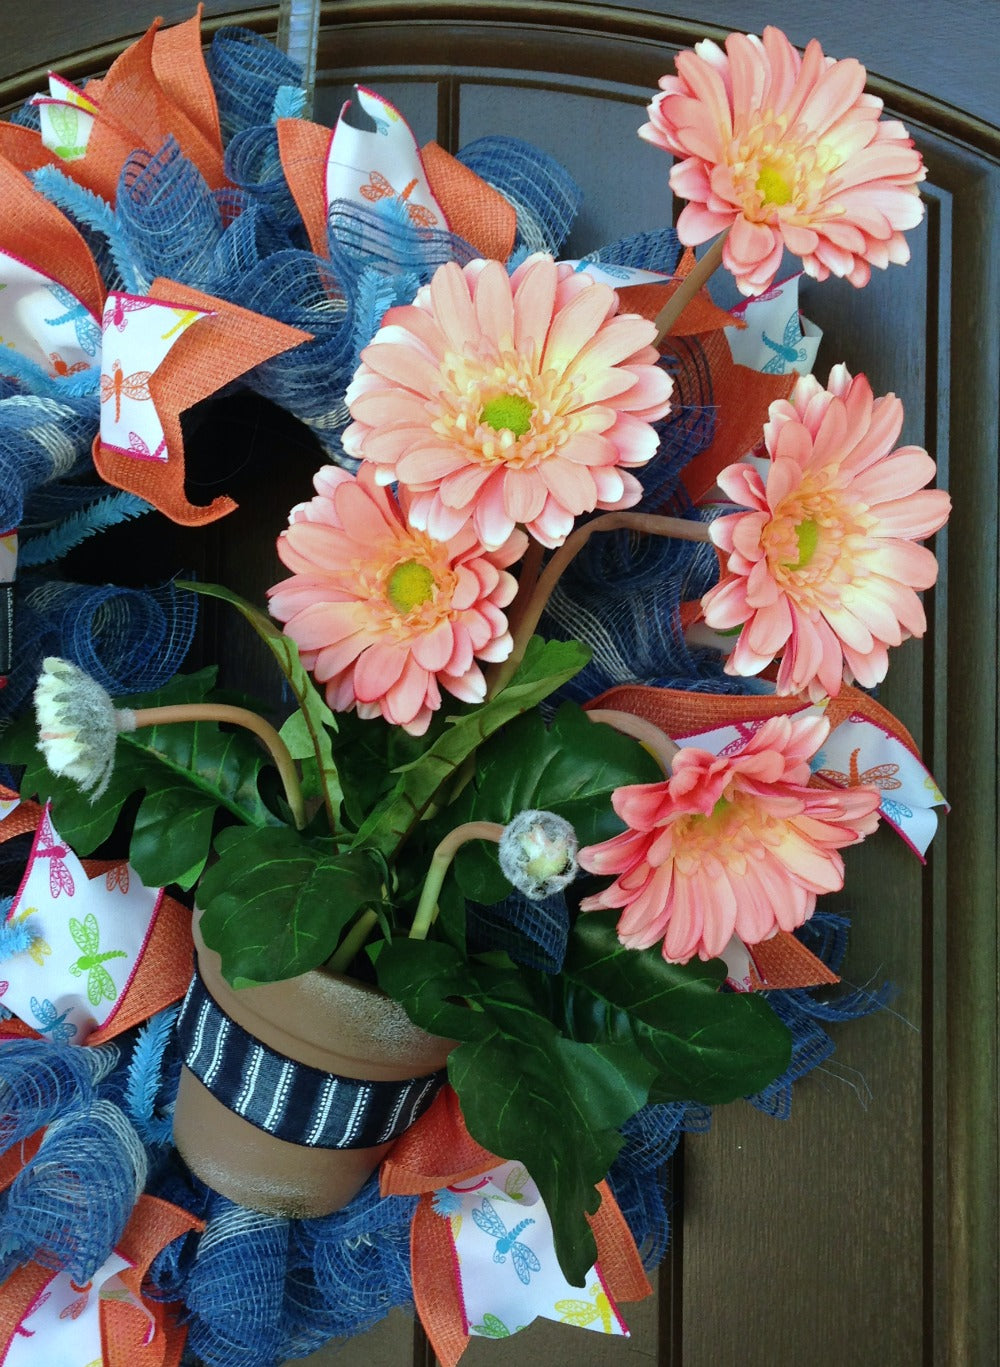 Salmon Gerbera Daisy Wreath Tutorial